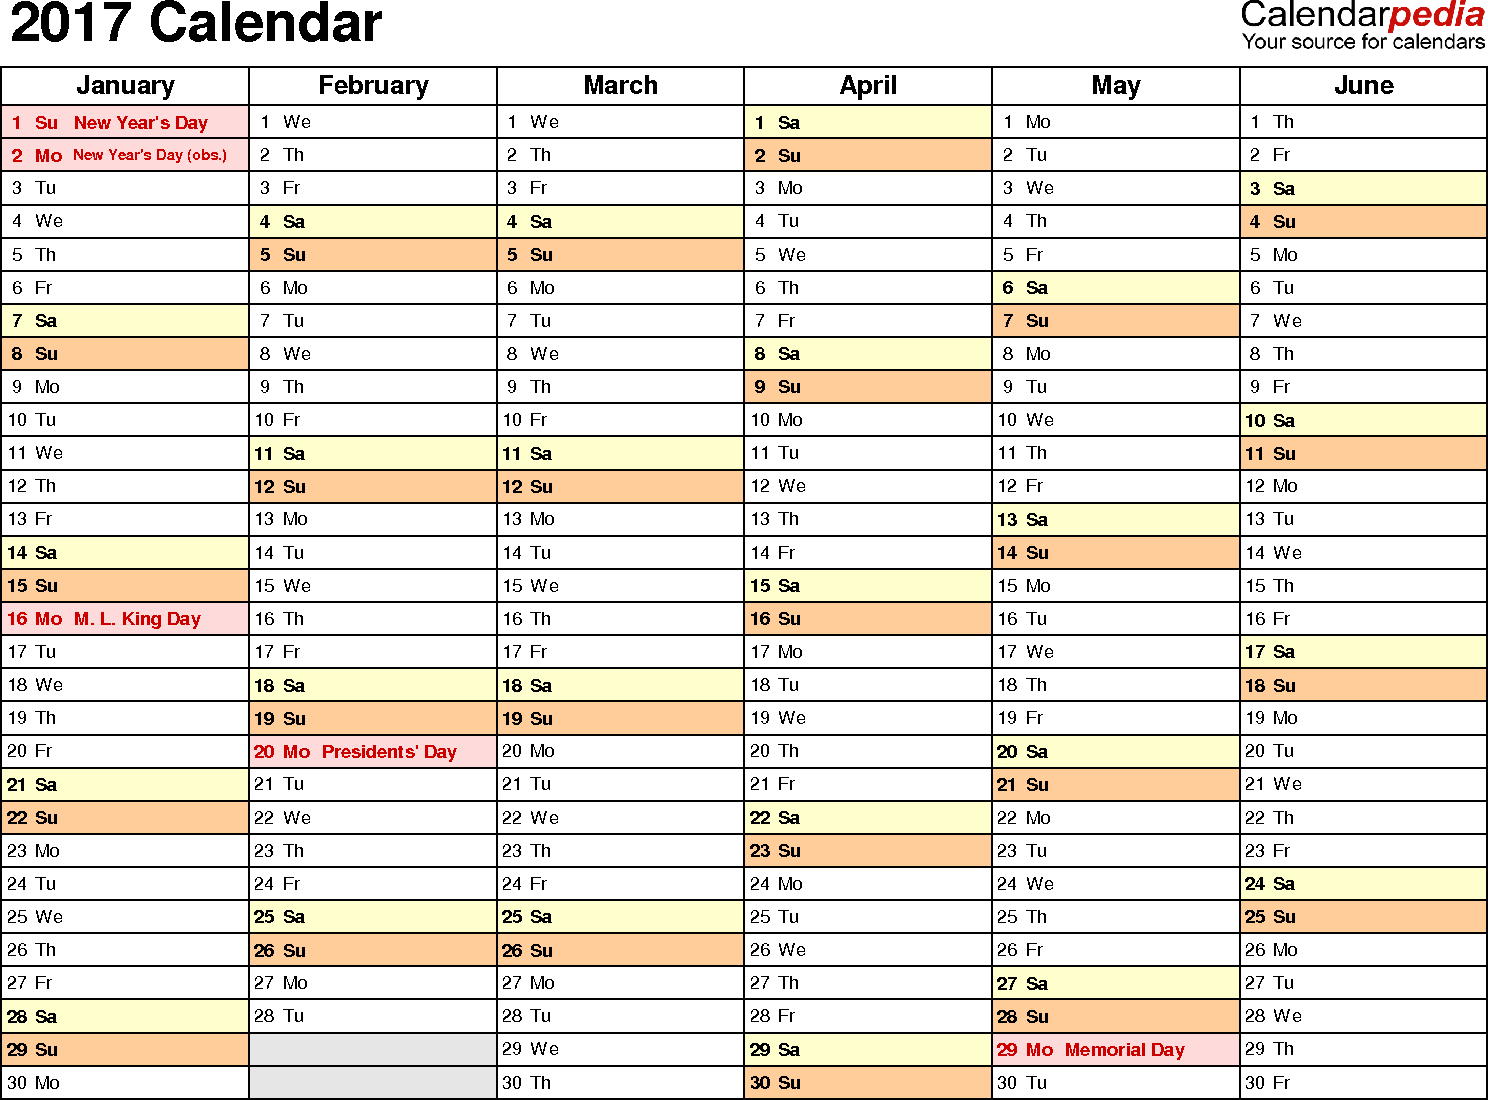 Ediblewildsus  Remarkable  Calendar  Download  Free Printable Excel Templates Xls With Gorgeous Template   Calendar For Excel Months Horizontally  Pages Landscape Orientation With Cute Two Way Data Table Excel Also Excel How To Make Drop Down List In Addition Excel Software Free And Excel Filter Column As Well As How To Create A Excel Spreadsheet Additionally Calculate Percentage Increase Excel From Calendarpediacom With Ediblewildsus  Gorgeous  Calendar  Download  Free Printable Excel Templates Xls With Cute Template   Calendar For Excel Months Horizontally  Pages Landscape Orientation And Remarkable Two Way Data Table Excel Also Excel How To Make Drop Down List In Addition Excel Software Free From Calendarpediacom